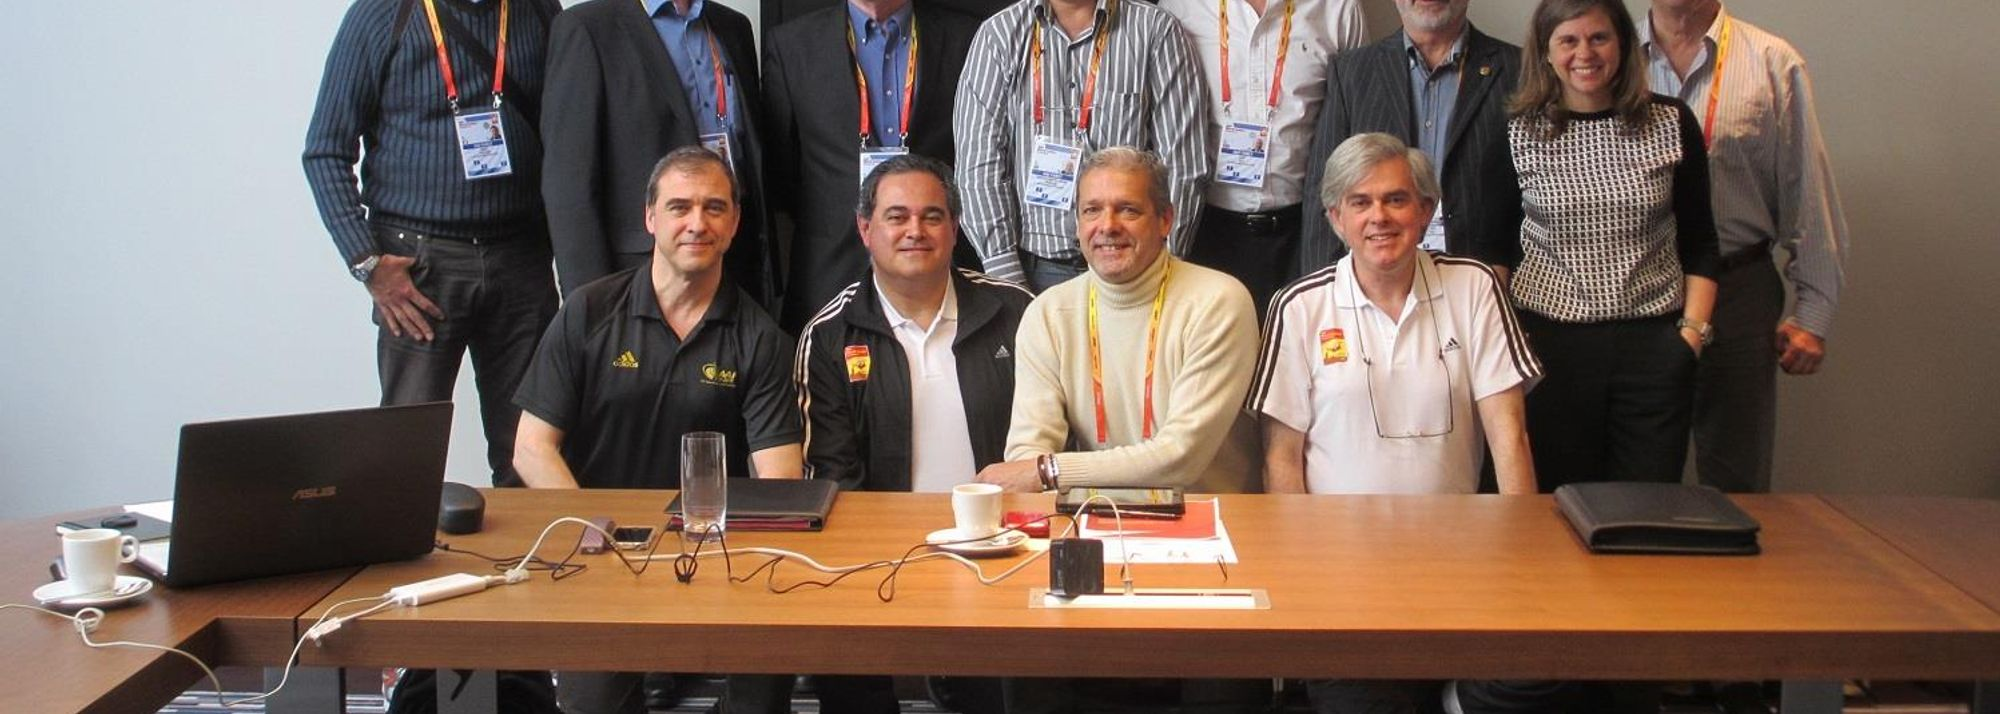 A seminar was held in Sopot, Poland, during the IAAF World Indoor Championships last weekend for all six members of the International Starters Panel.